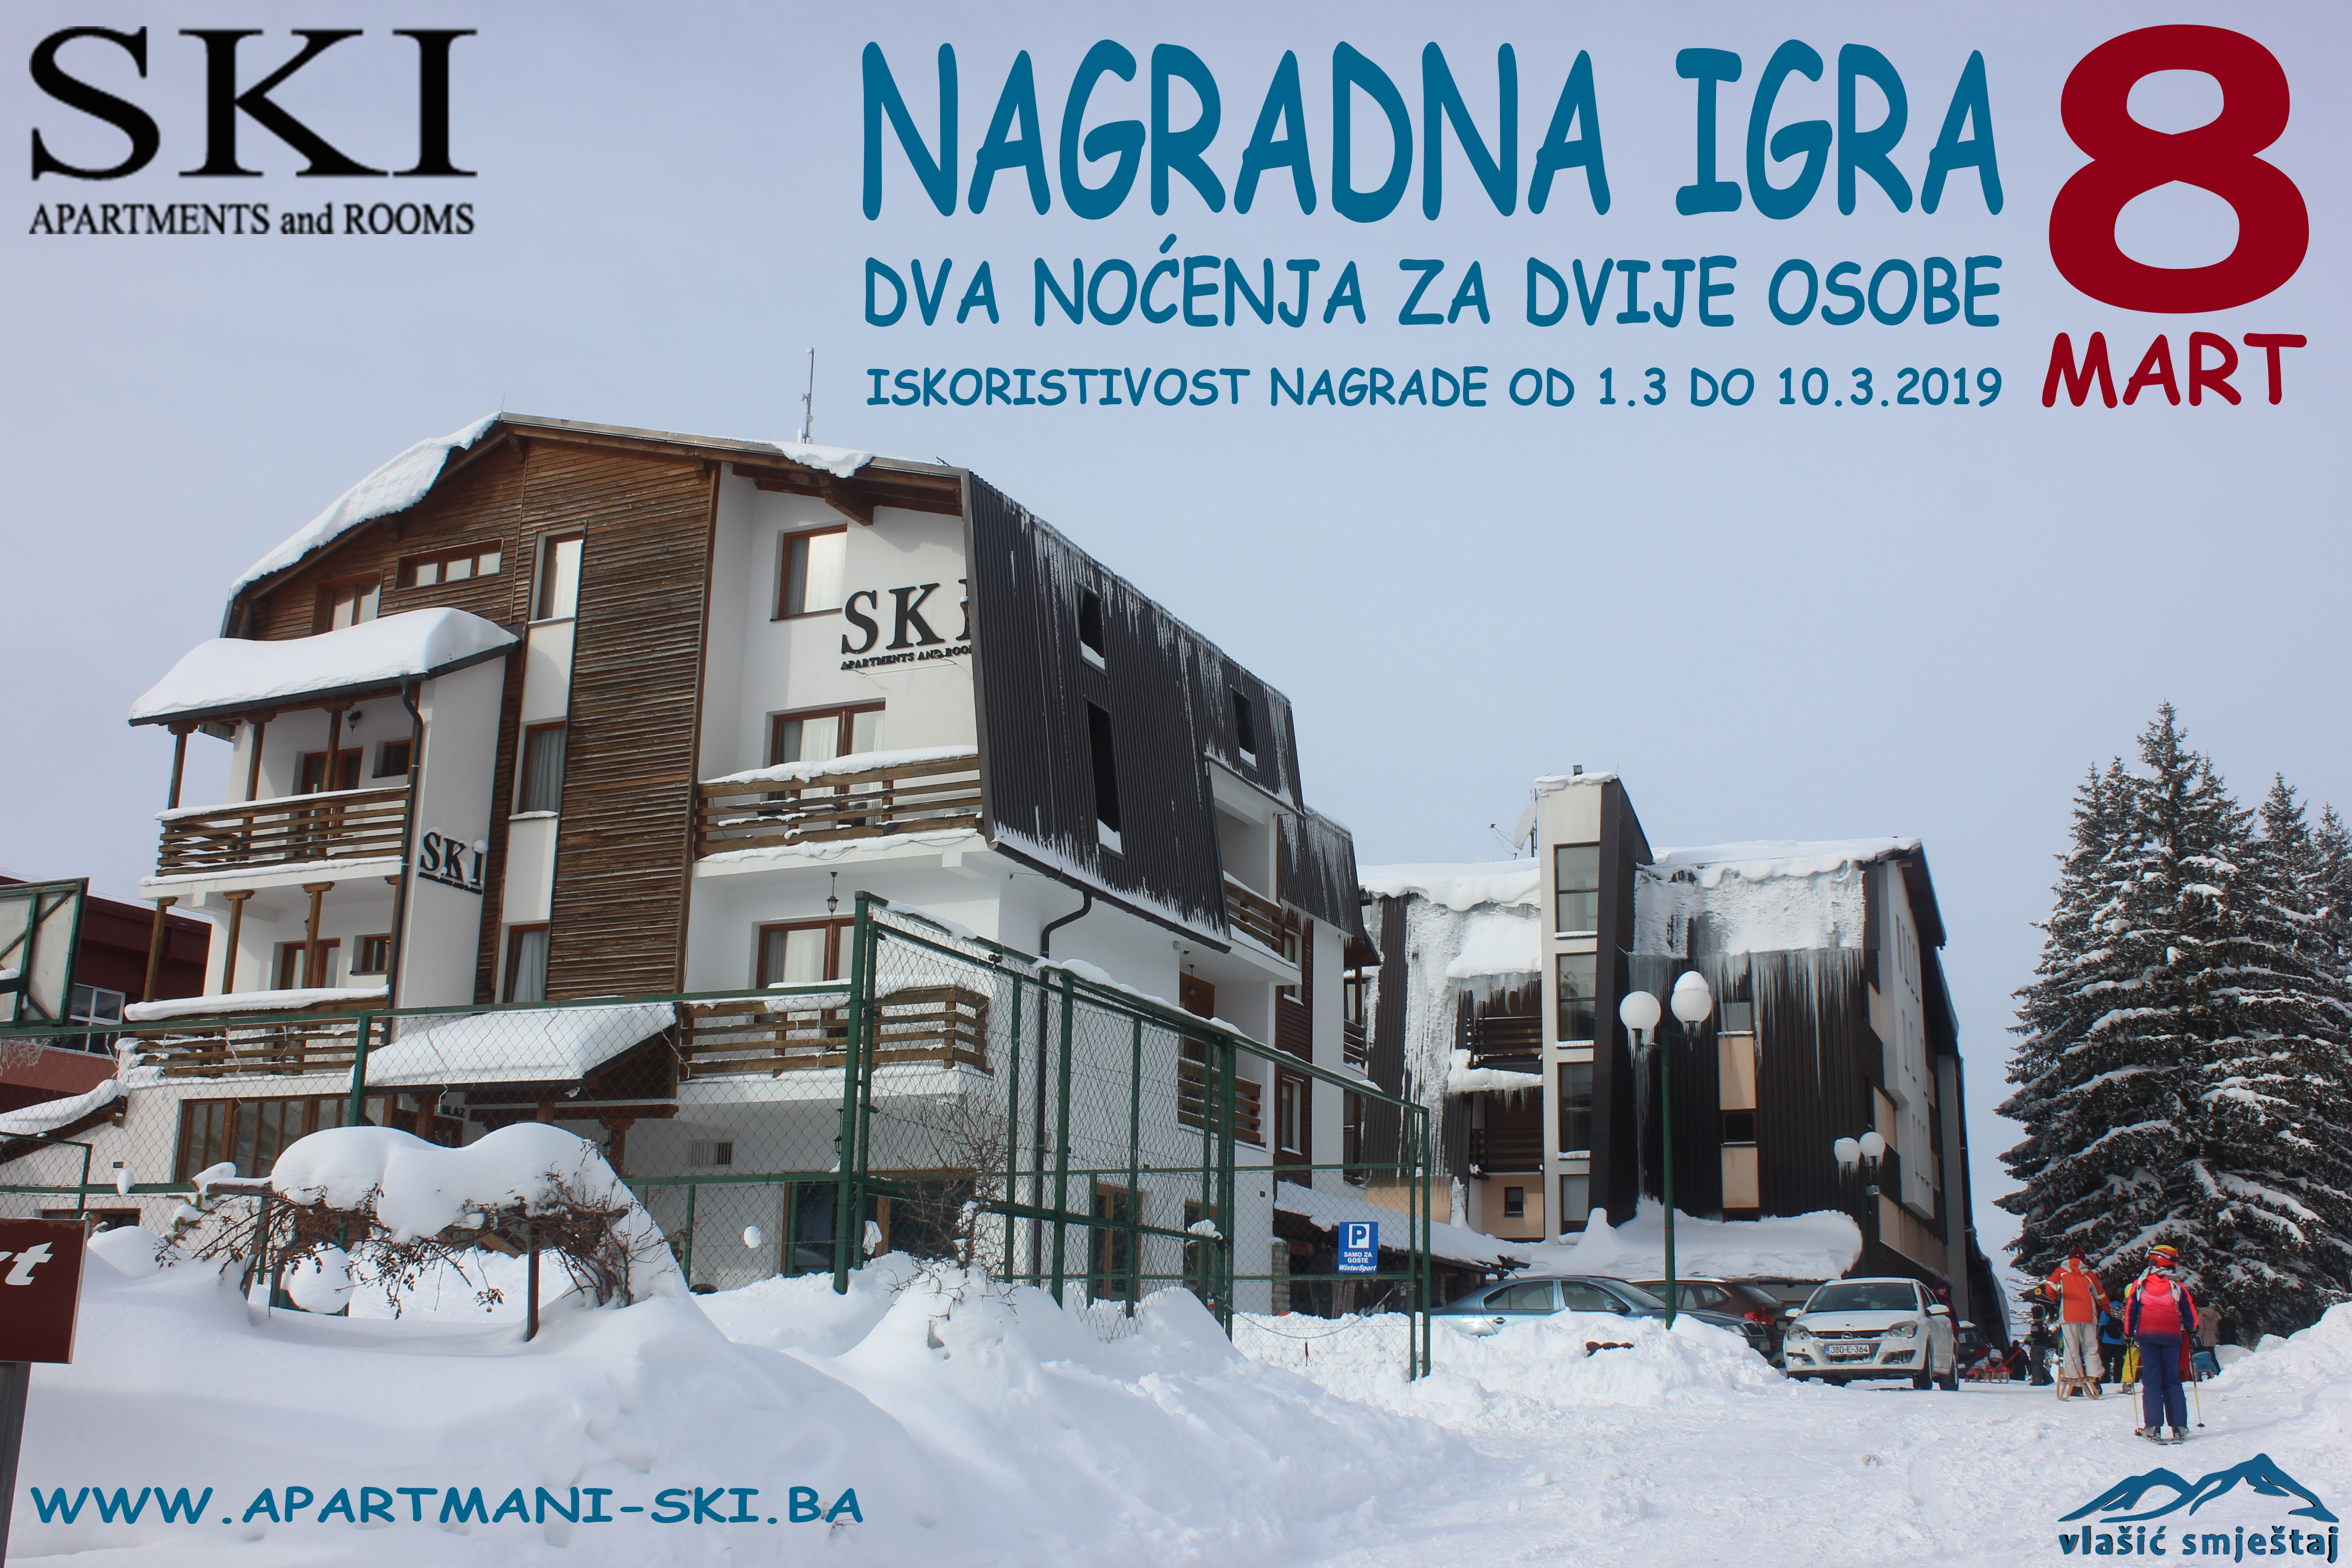 Nagradna igra Apartments and rooms SKI - 8. Mart